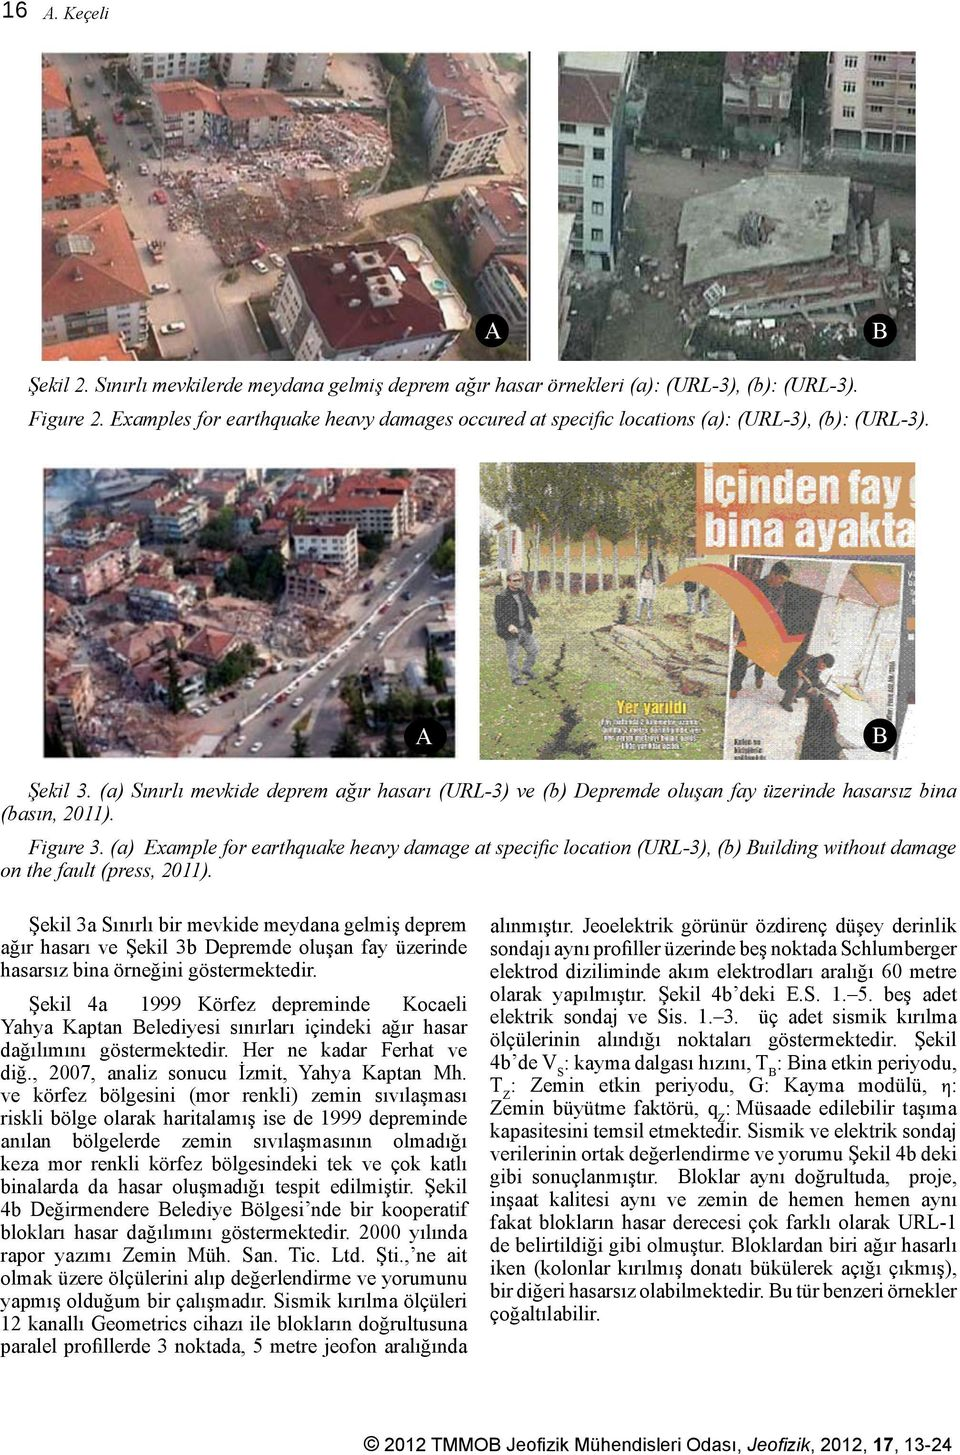 Sınırlı mevkilerde meydana gelmi# deprem a$ır hasar örnekleri (a): (URL-3), (b): (URL-3). Figure 2. Examples for earthquake heavy damages occured at specific locations (a): (URL-3), (b): (URL-3).